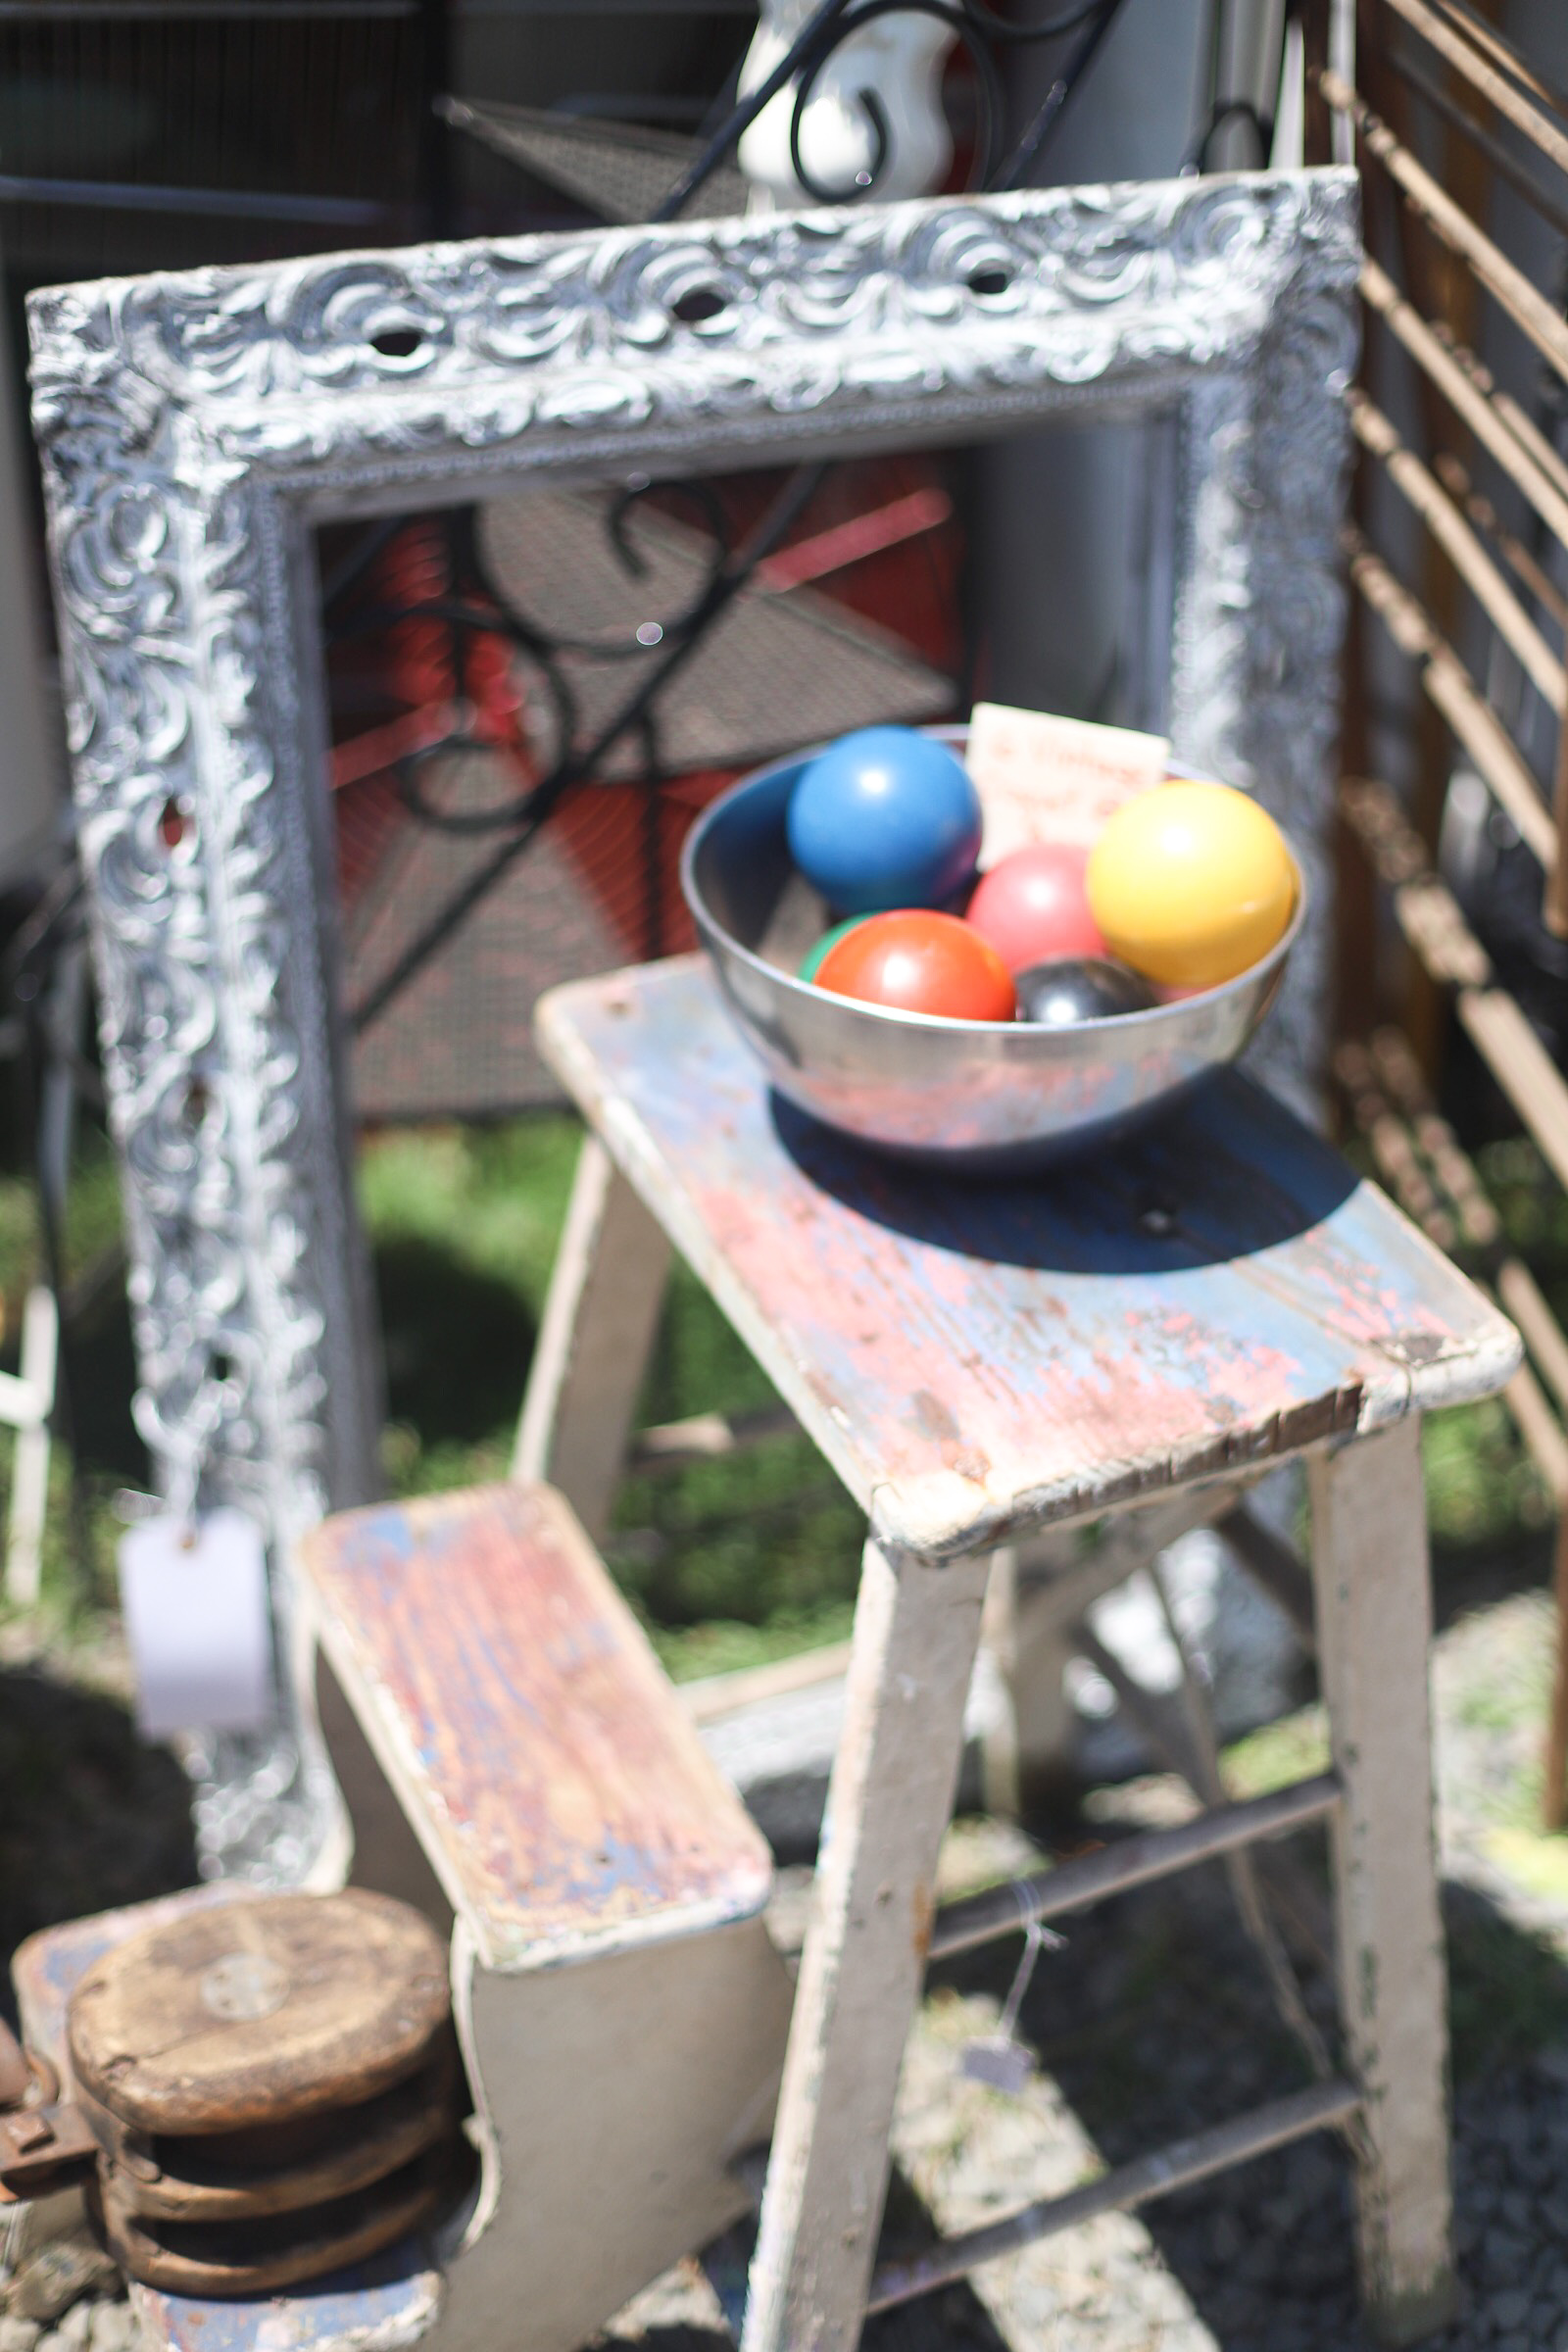 A guide to the Brimfield Antique Show and Flea Market- the largest of its kind in the country - and how to score the best vintage and thrift finds there!